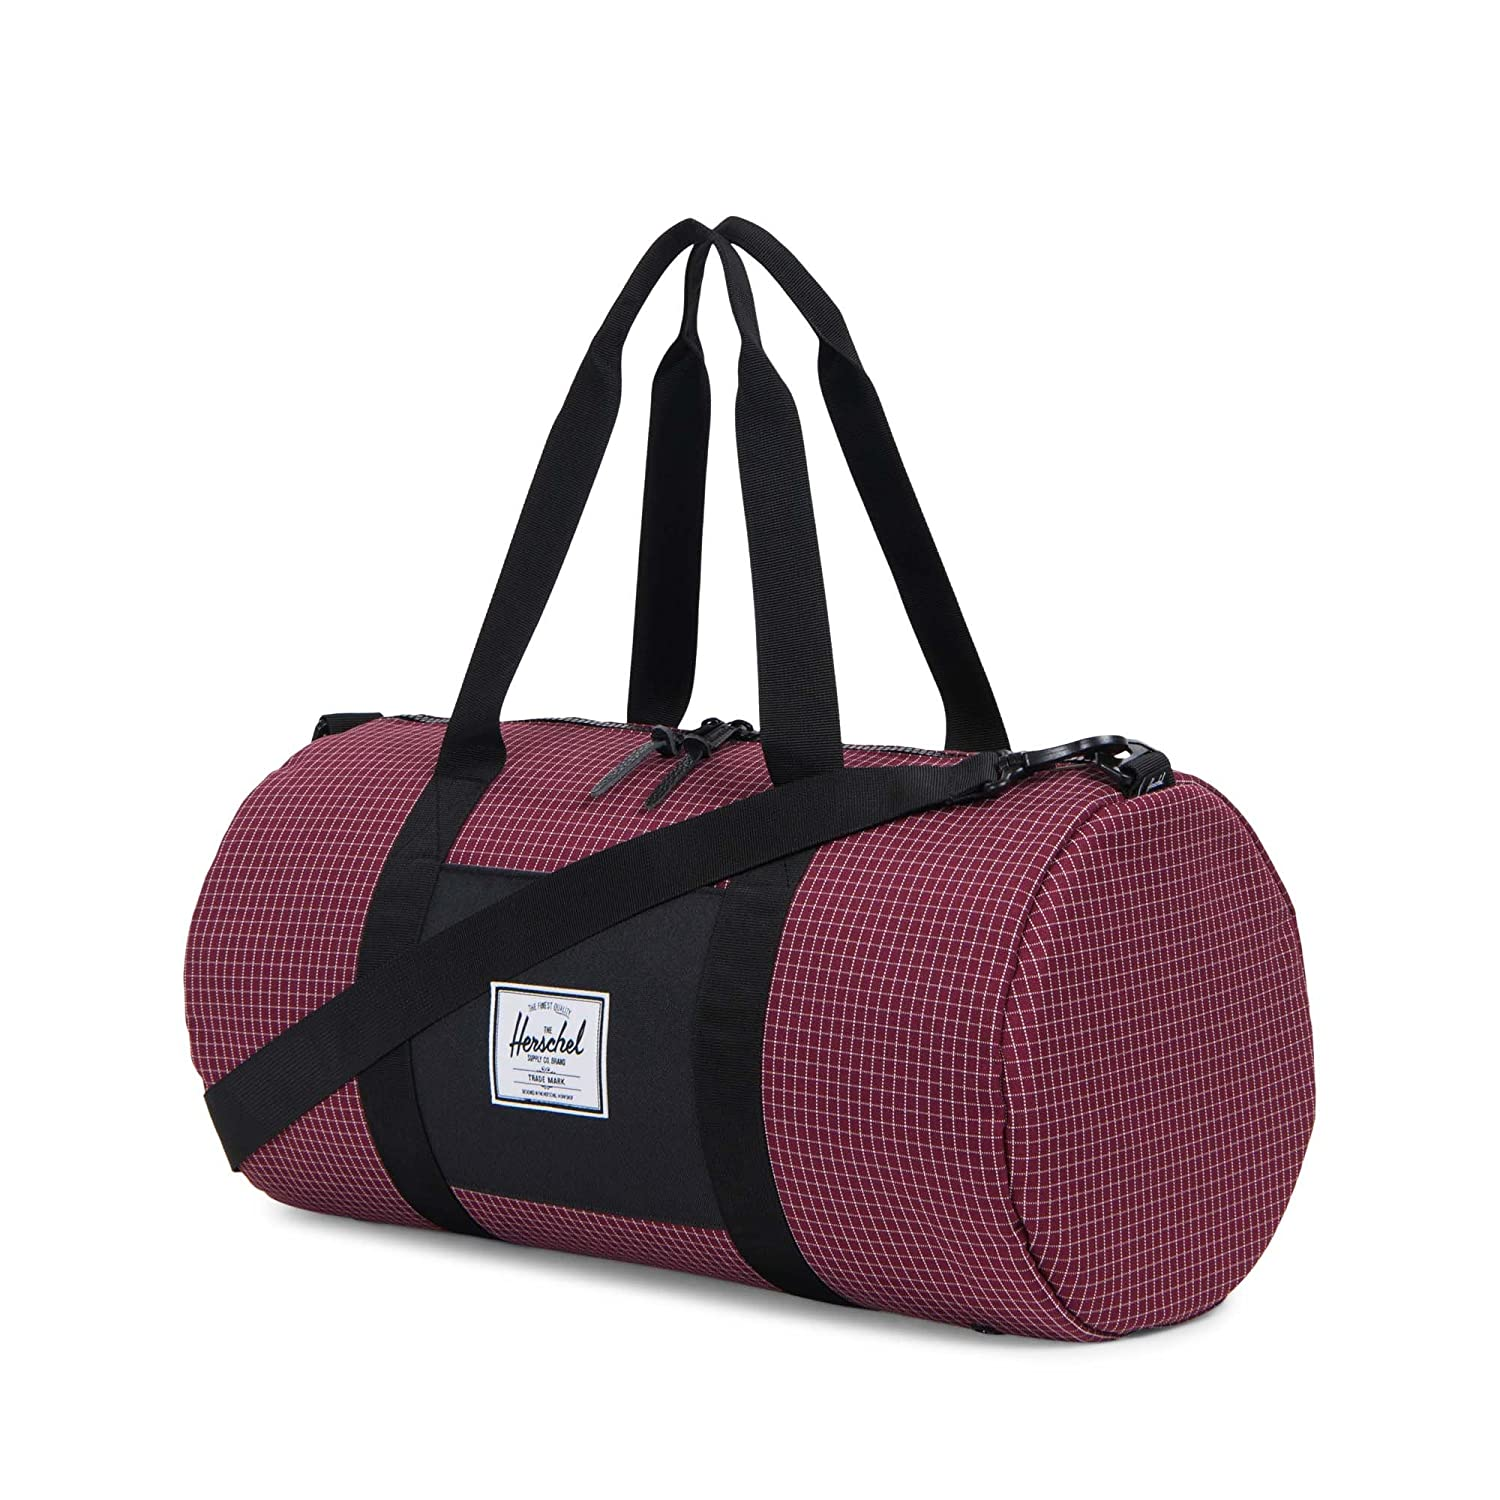 17a08702b Herschel Supply Co. Sutton mid-volume Duffle Bag Duffel Bag: Amazon.es:  Ropa y accesorios